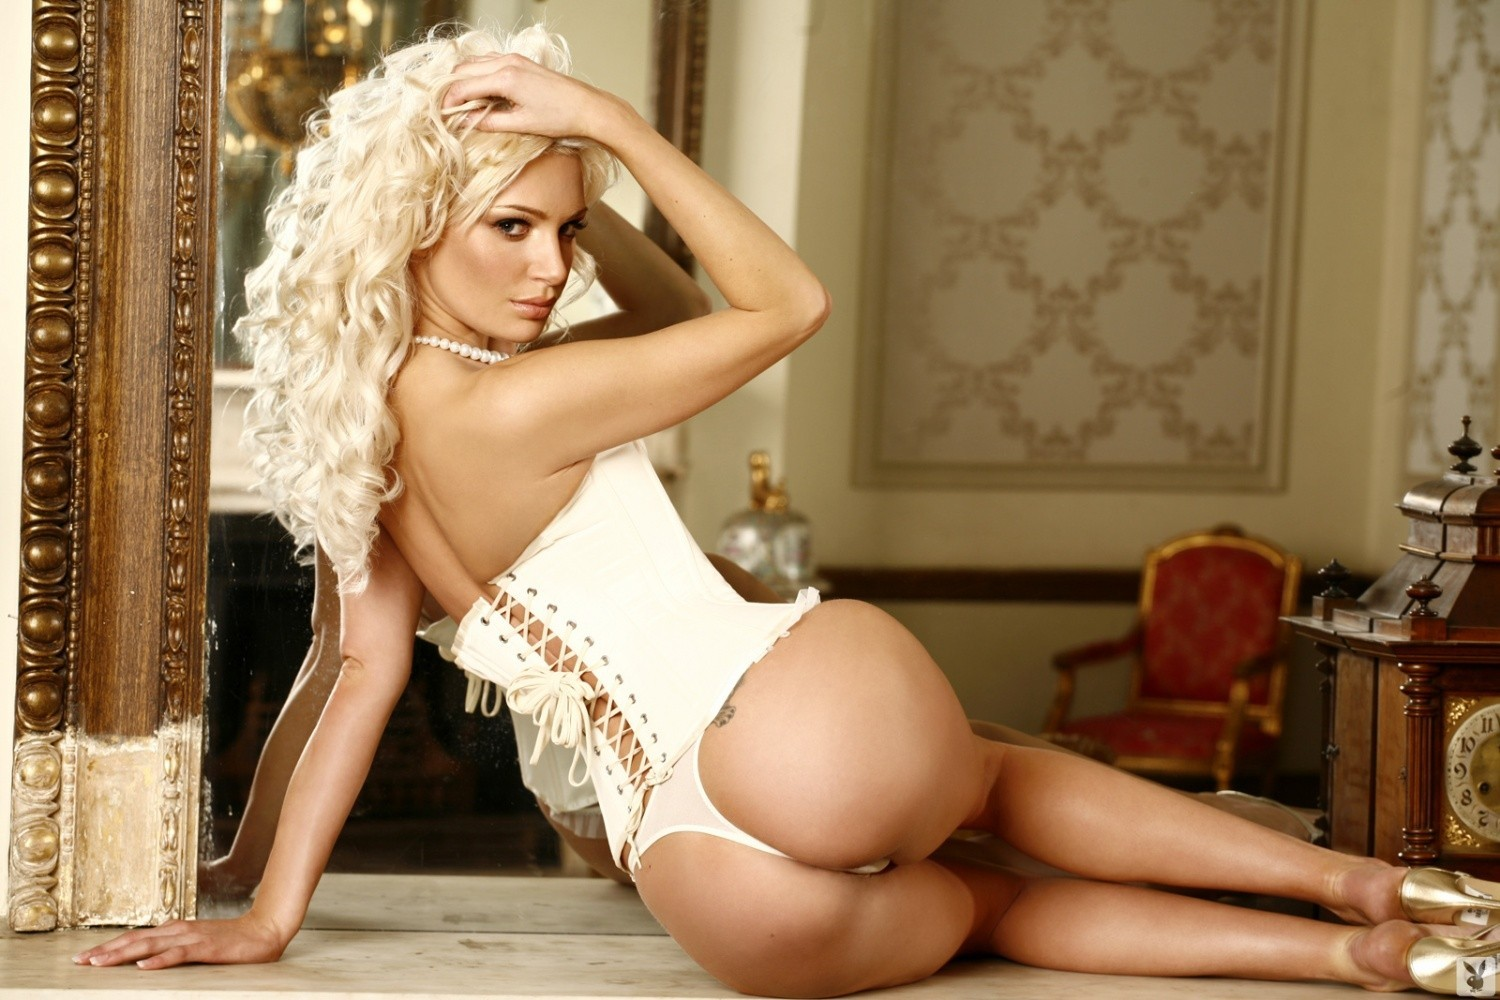 woman ass blondes corset high heels HD Wallpaper